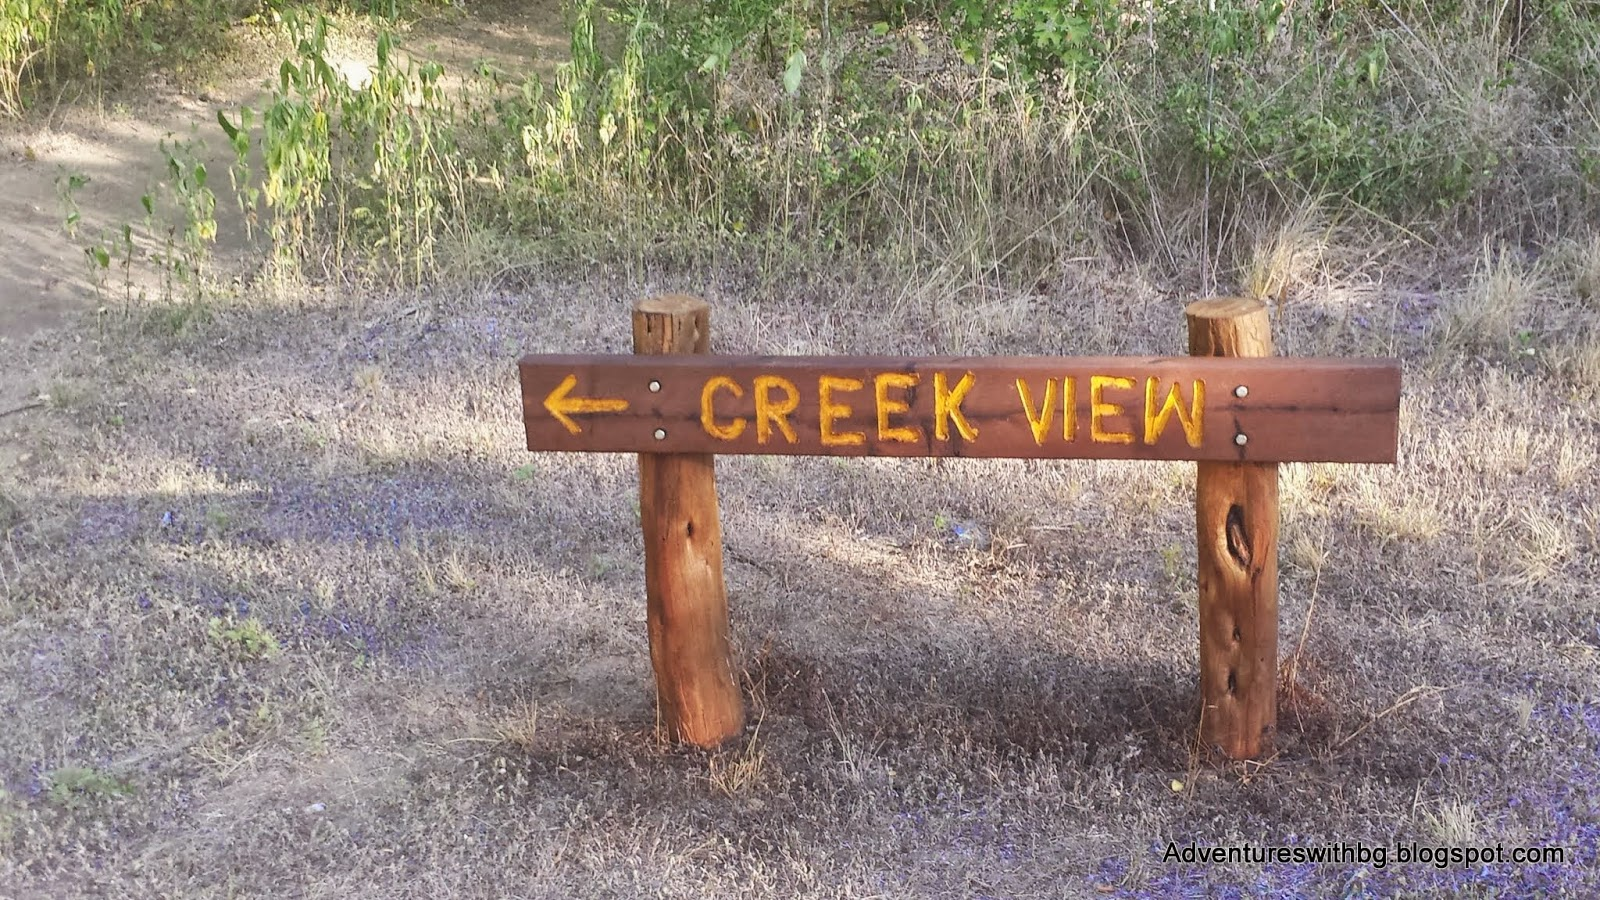 The Creek View Trailhead at lockhart state park